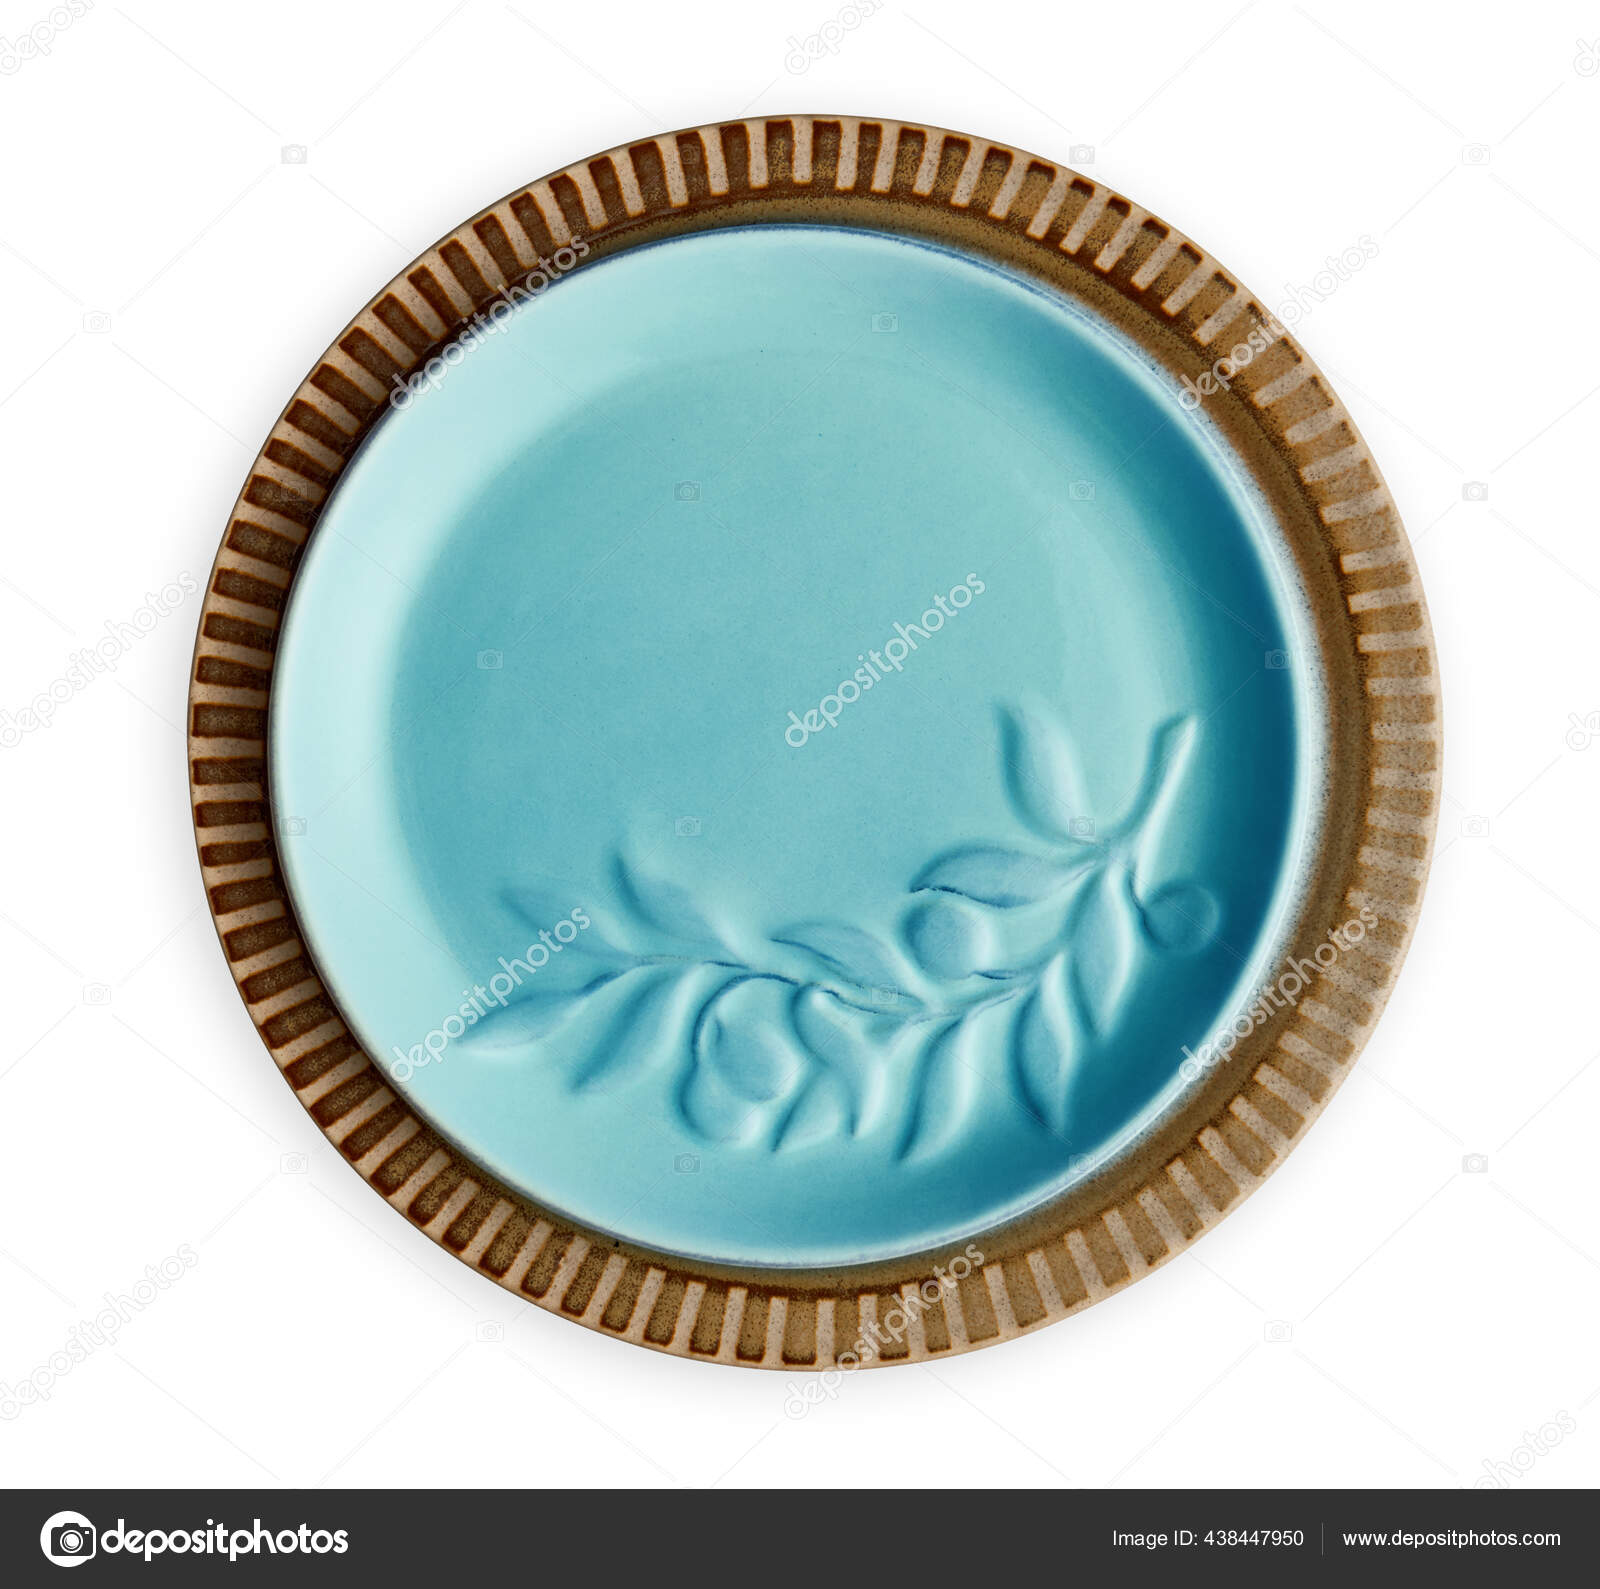 Empty Ceramics Plates Blue Plate Floral Pattern View Isolated White Fotos Imagens De C Dewins 438447950